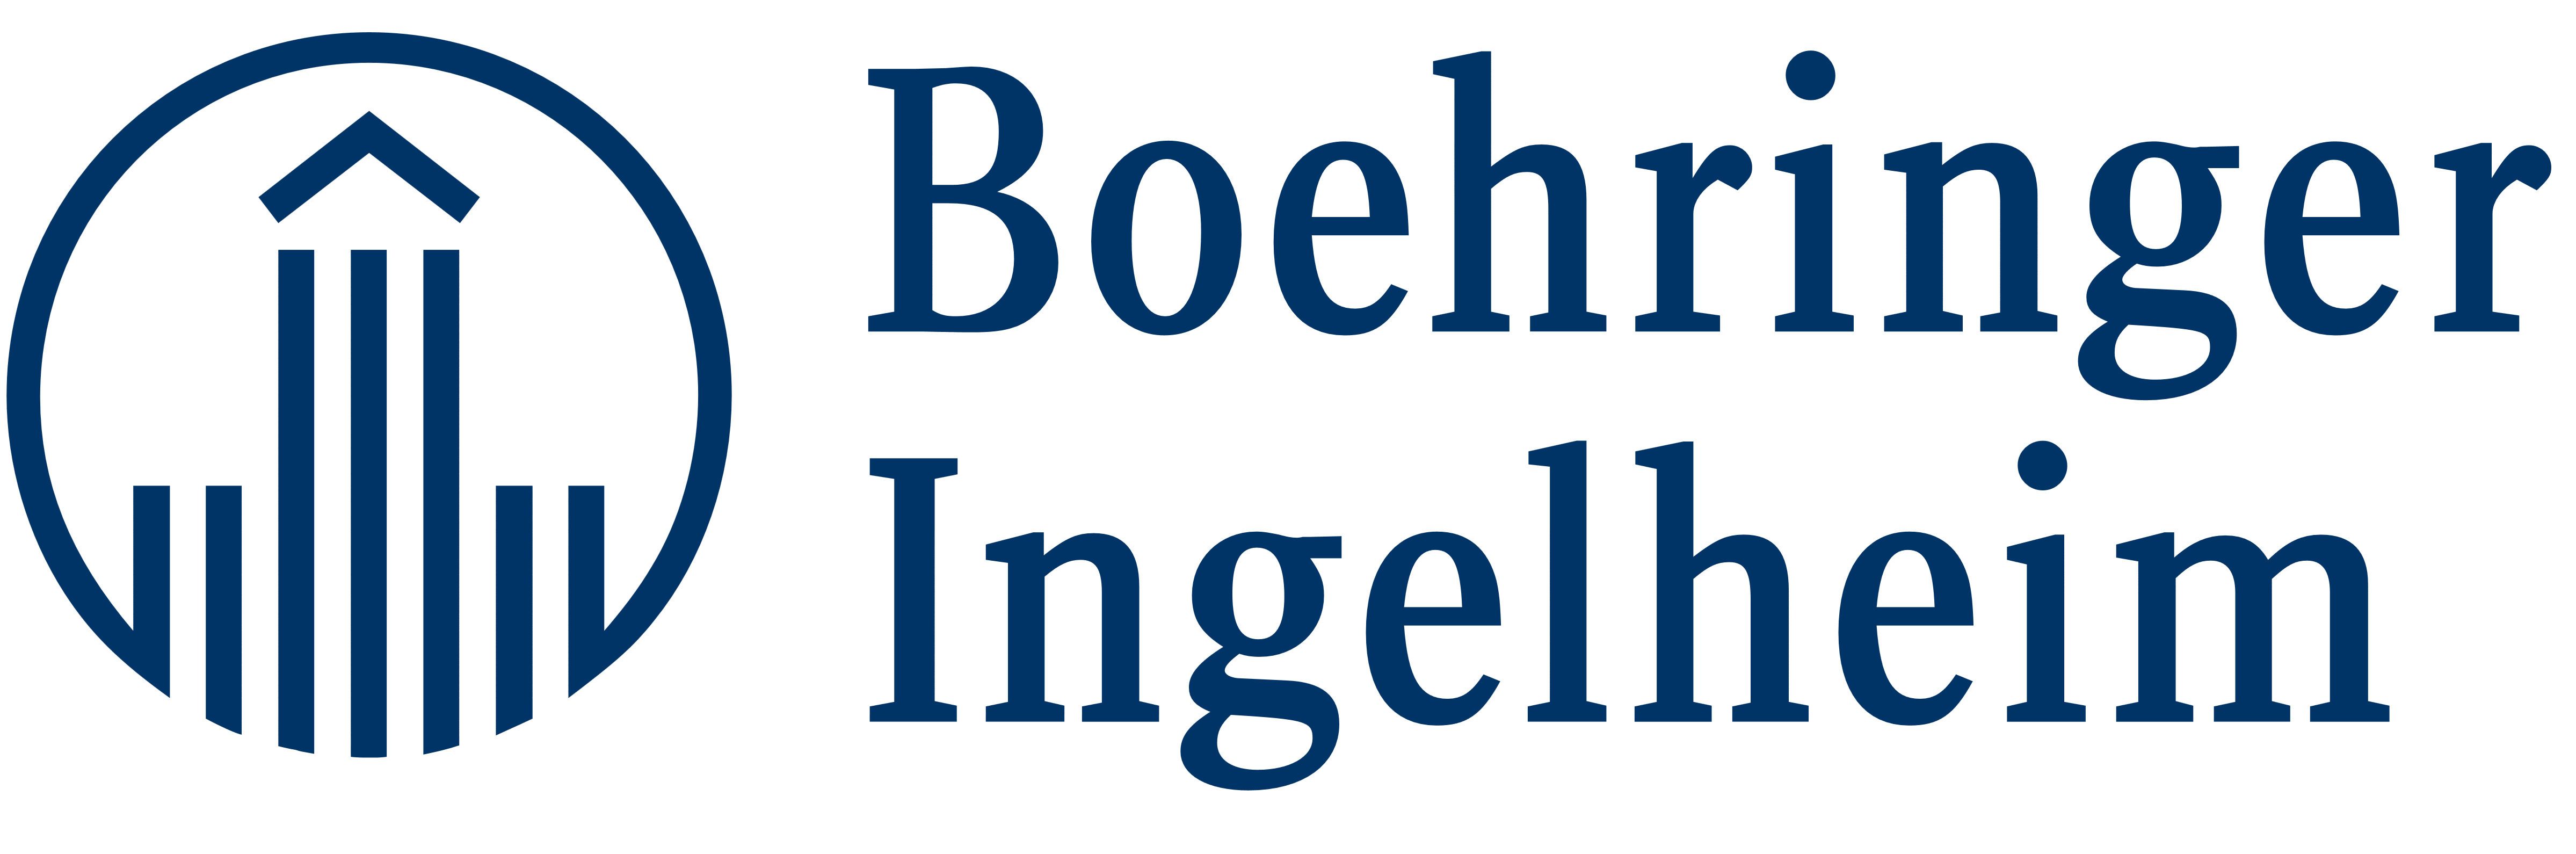 Boehringer Ingelheim – Logos Download